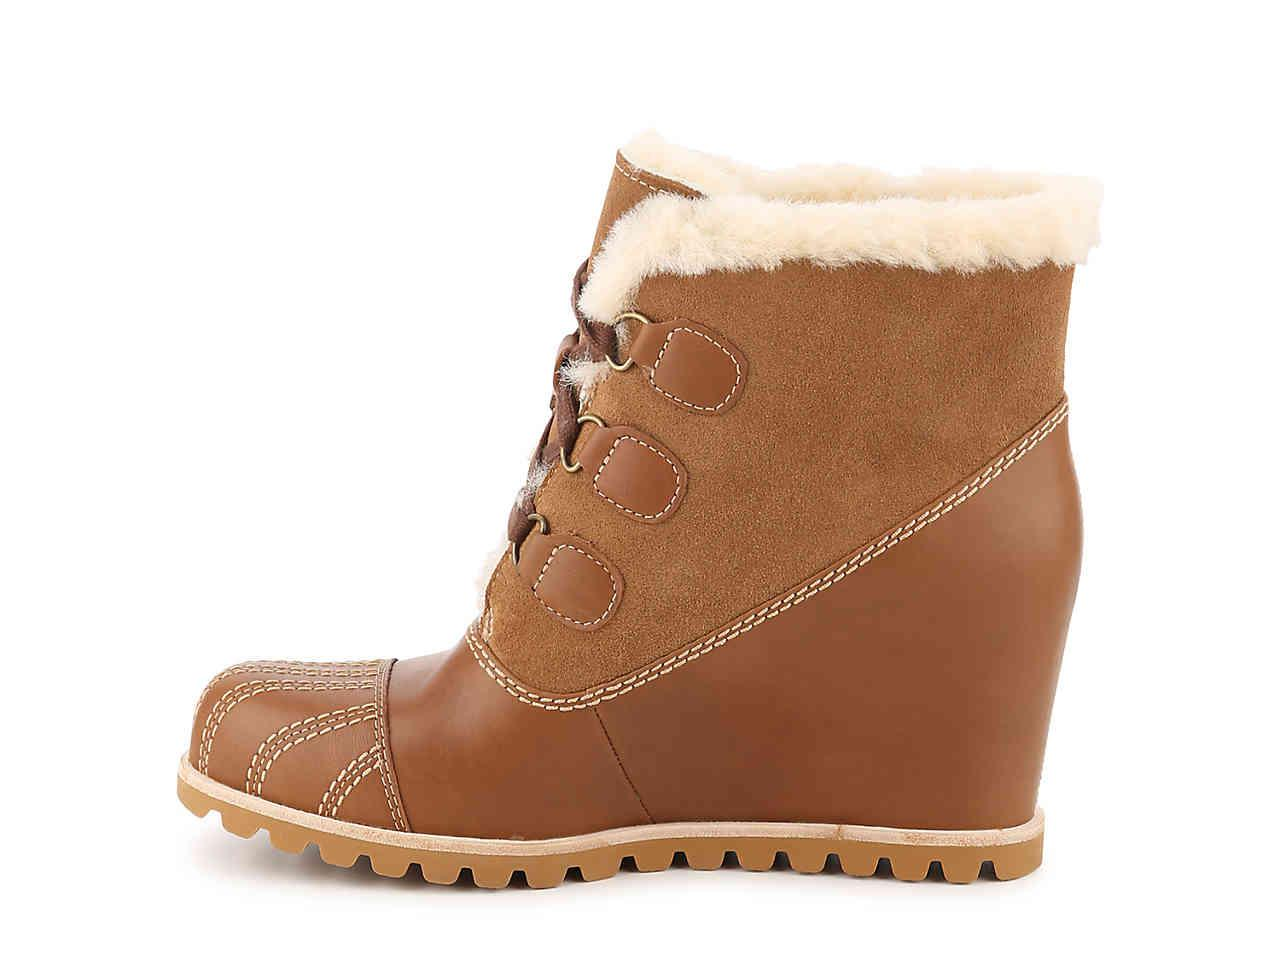 88ddafd145d Lyst - Ugg Alasdair Wedge Bootie in Brown